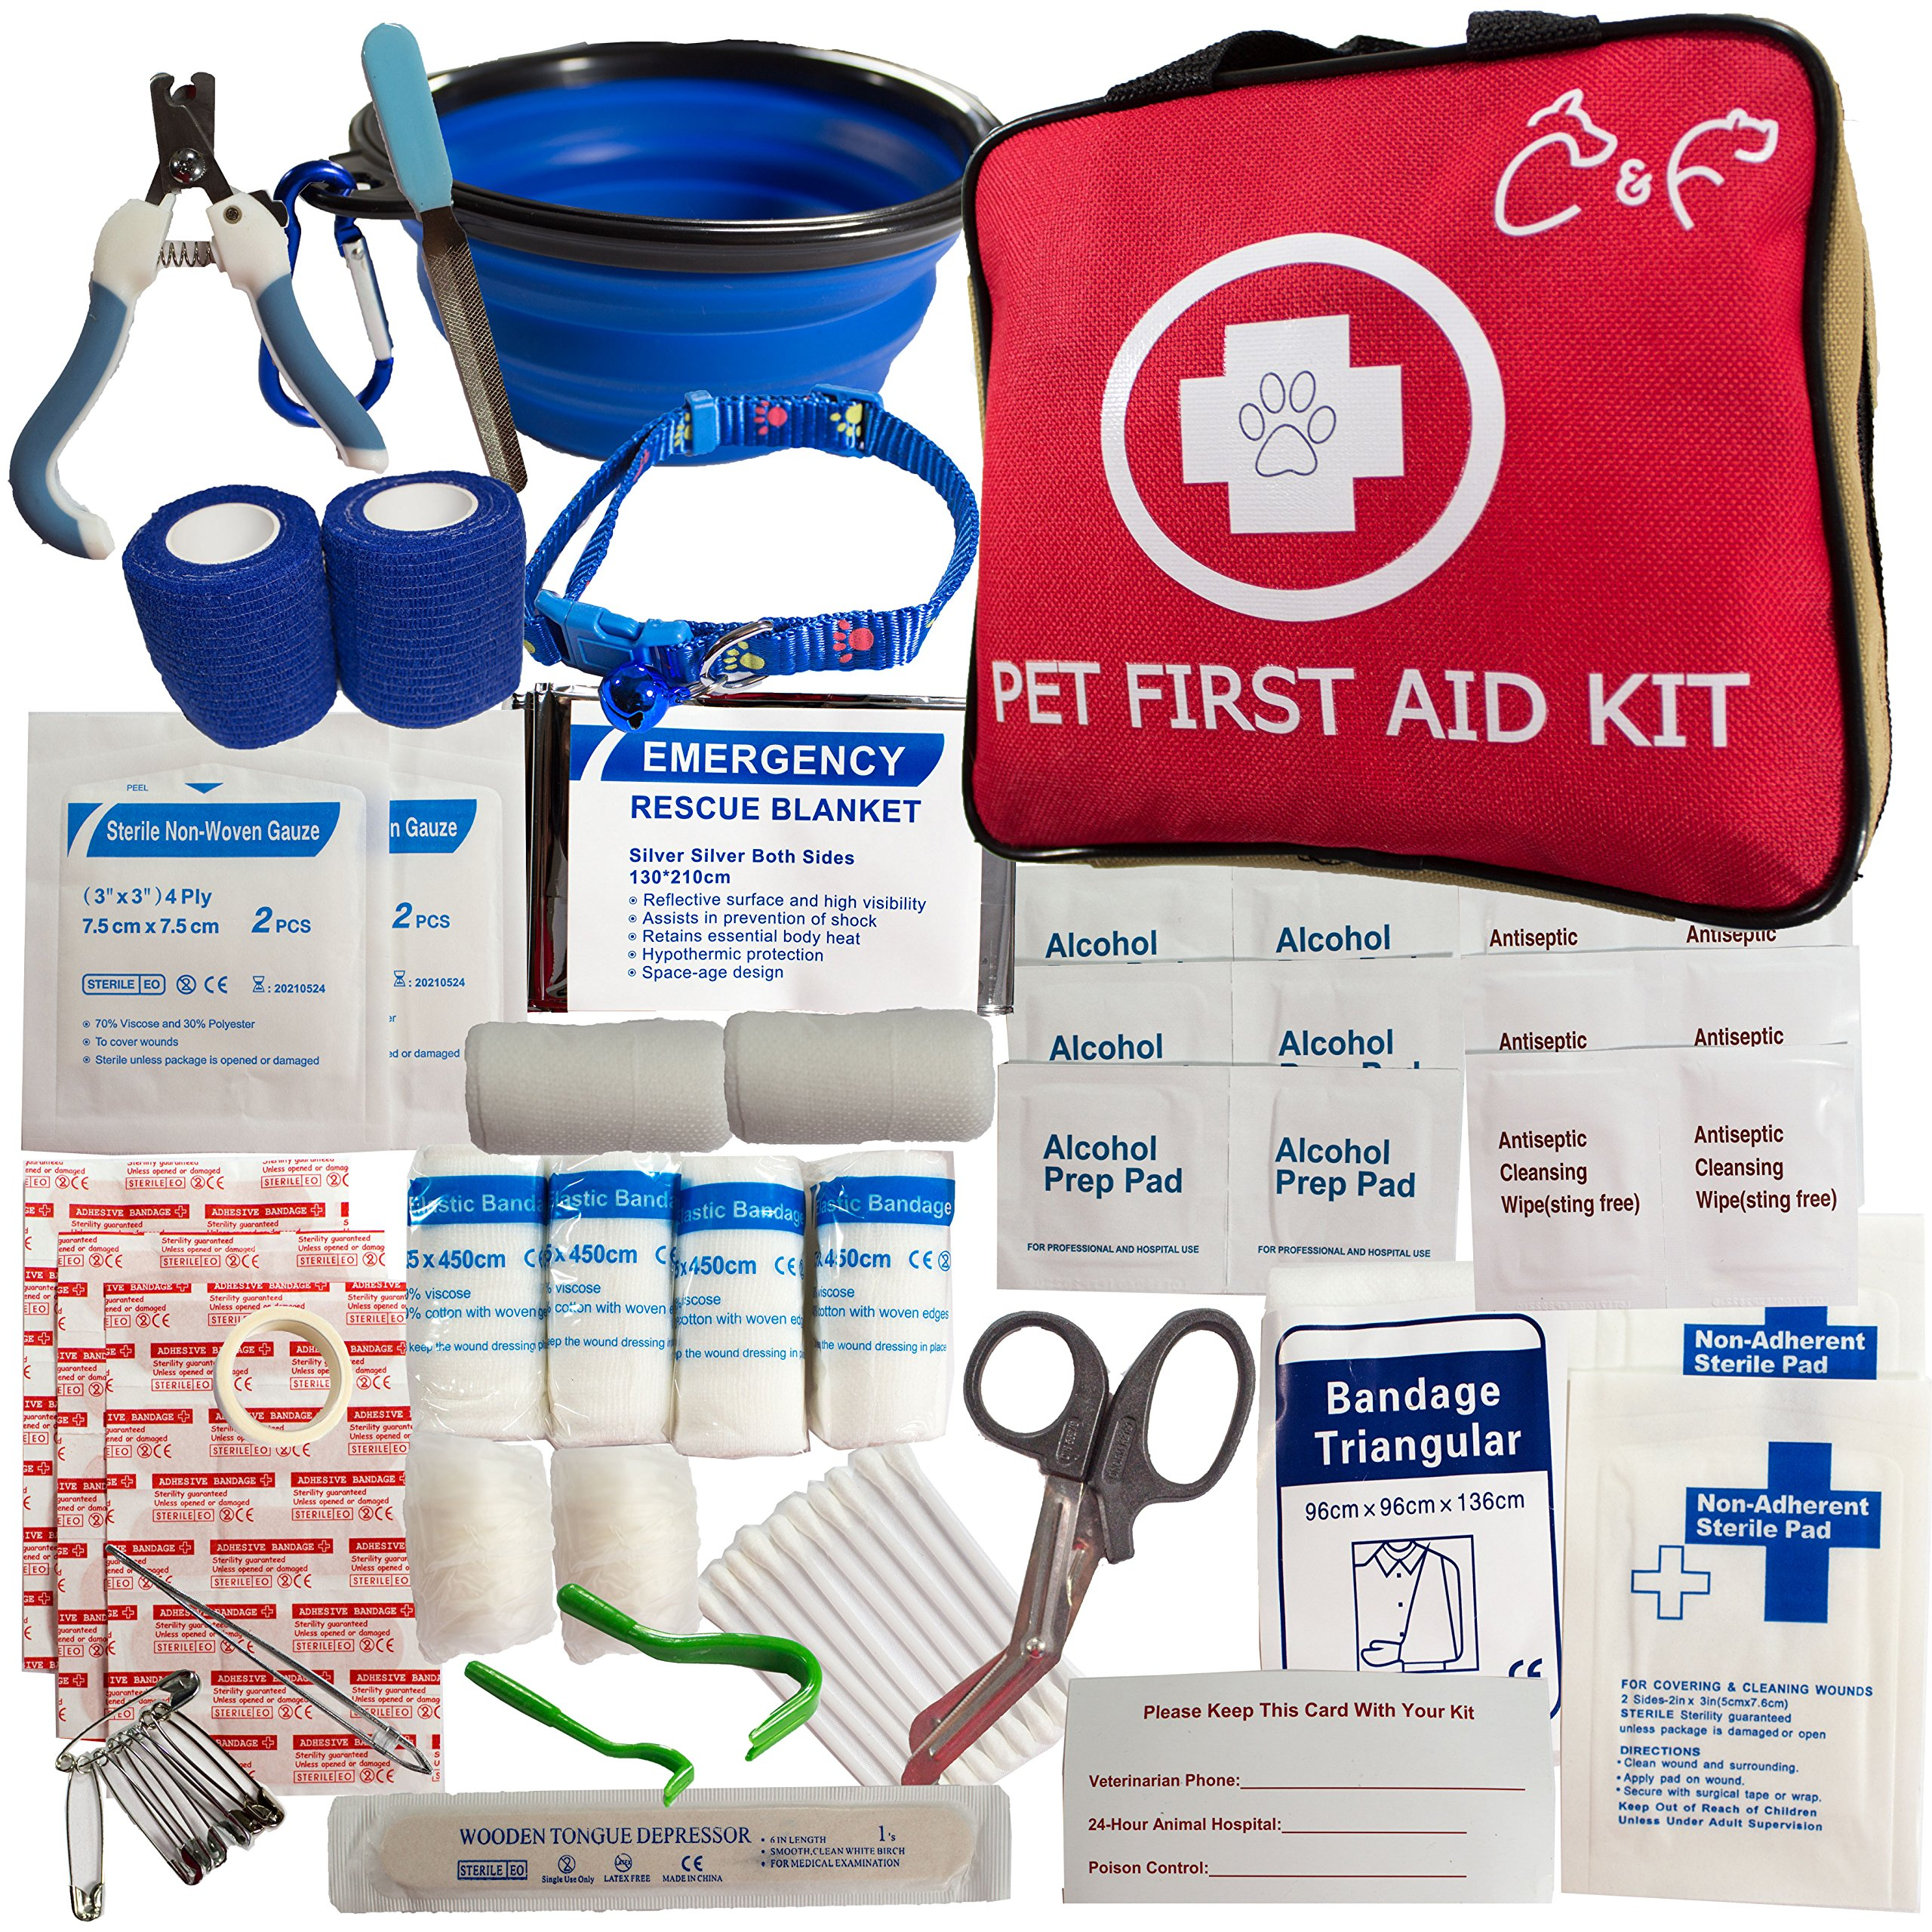 Pet First Aid Kit-Emergency Supplies for Travel, Walks, Camping, Hiking Or Just Fun at The Park. Includes Pet Nail Trimmer/Tick Remover/Pet Bowl/Pet Collar/Vet Wrap Fur Friendly Bandages